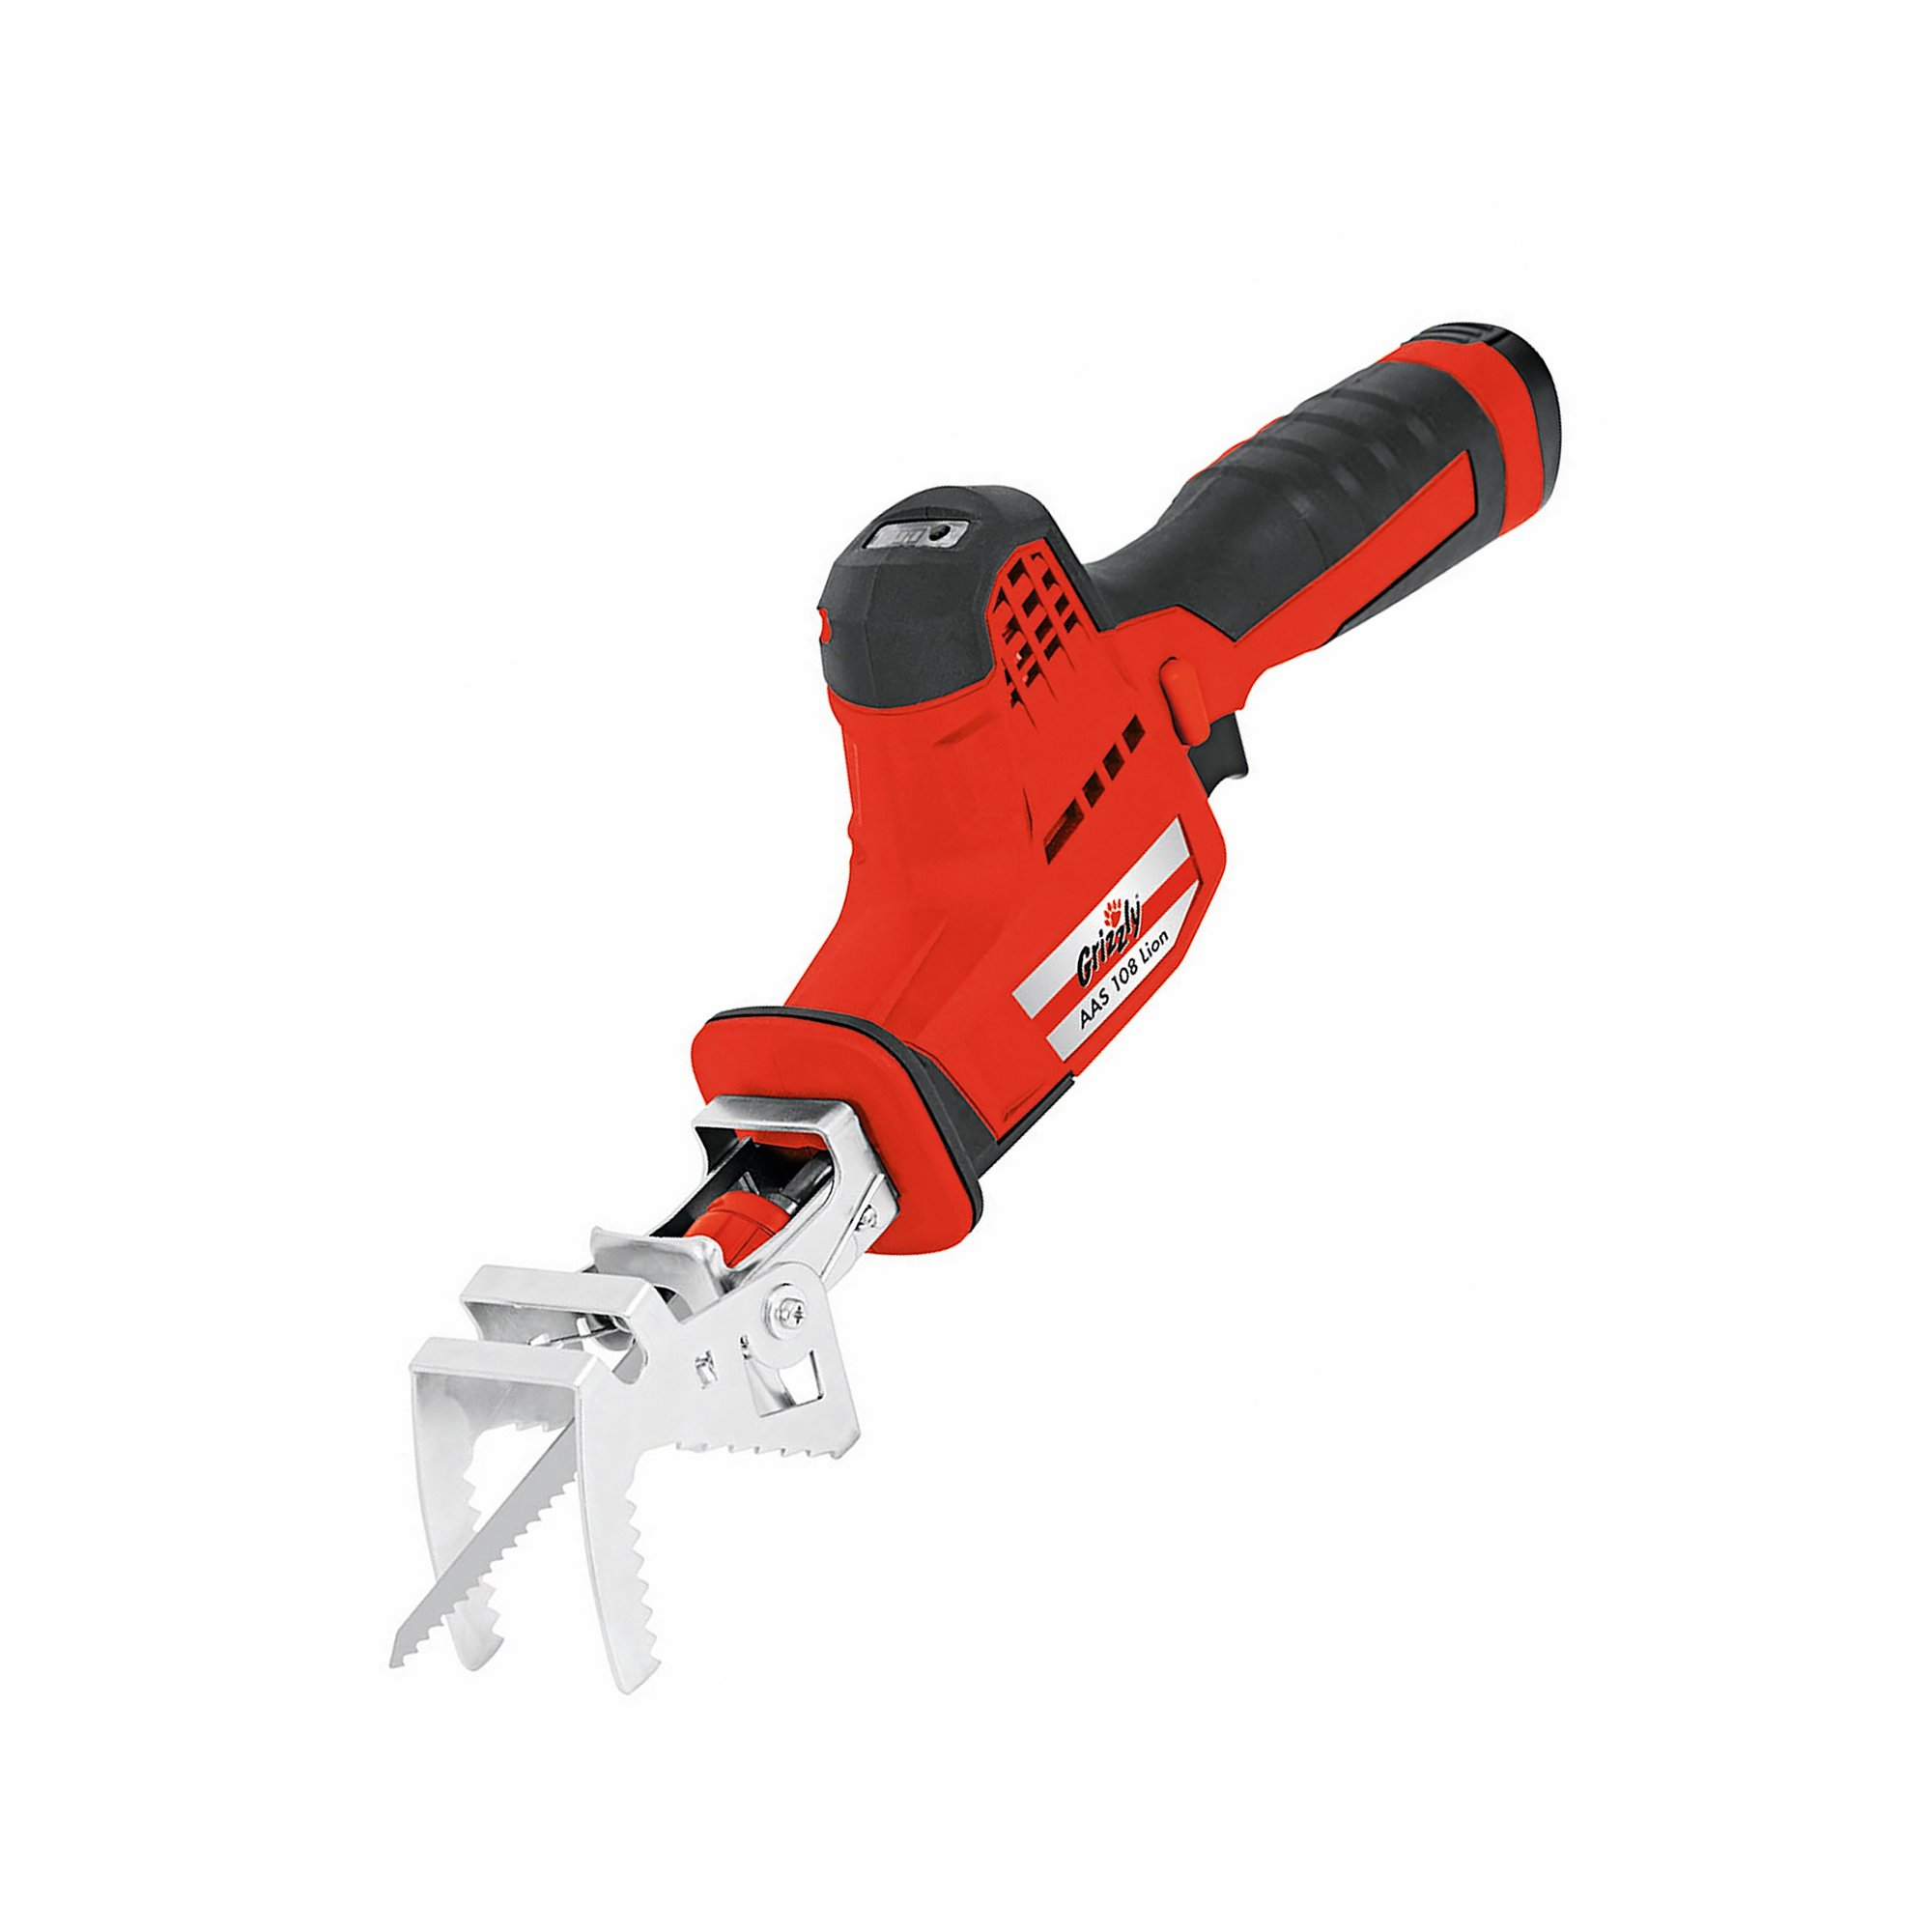 Image of Grizzly Cordless Reciprocating Saw